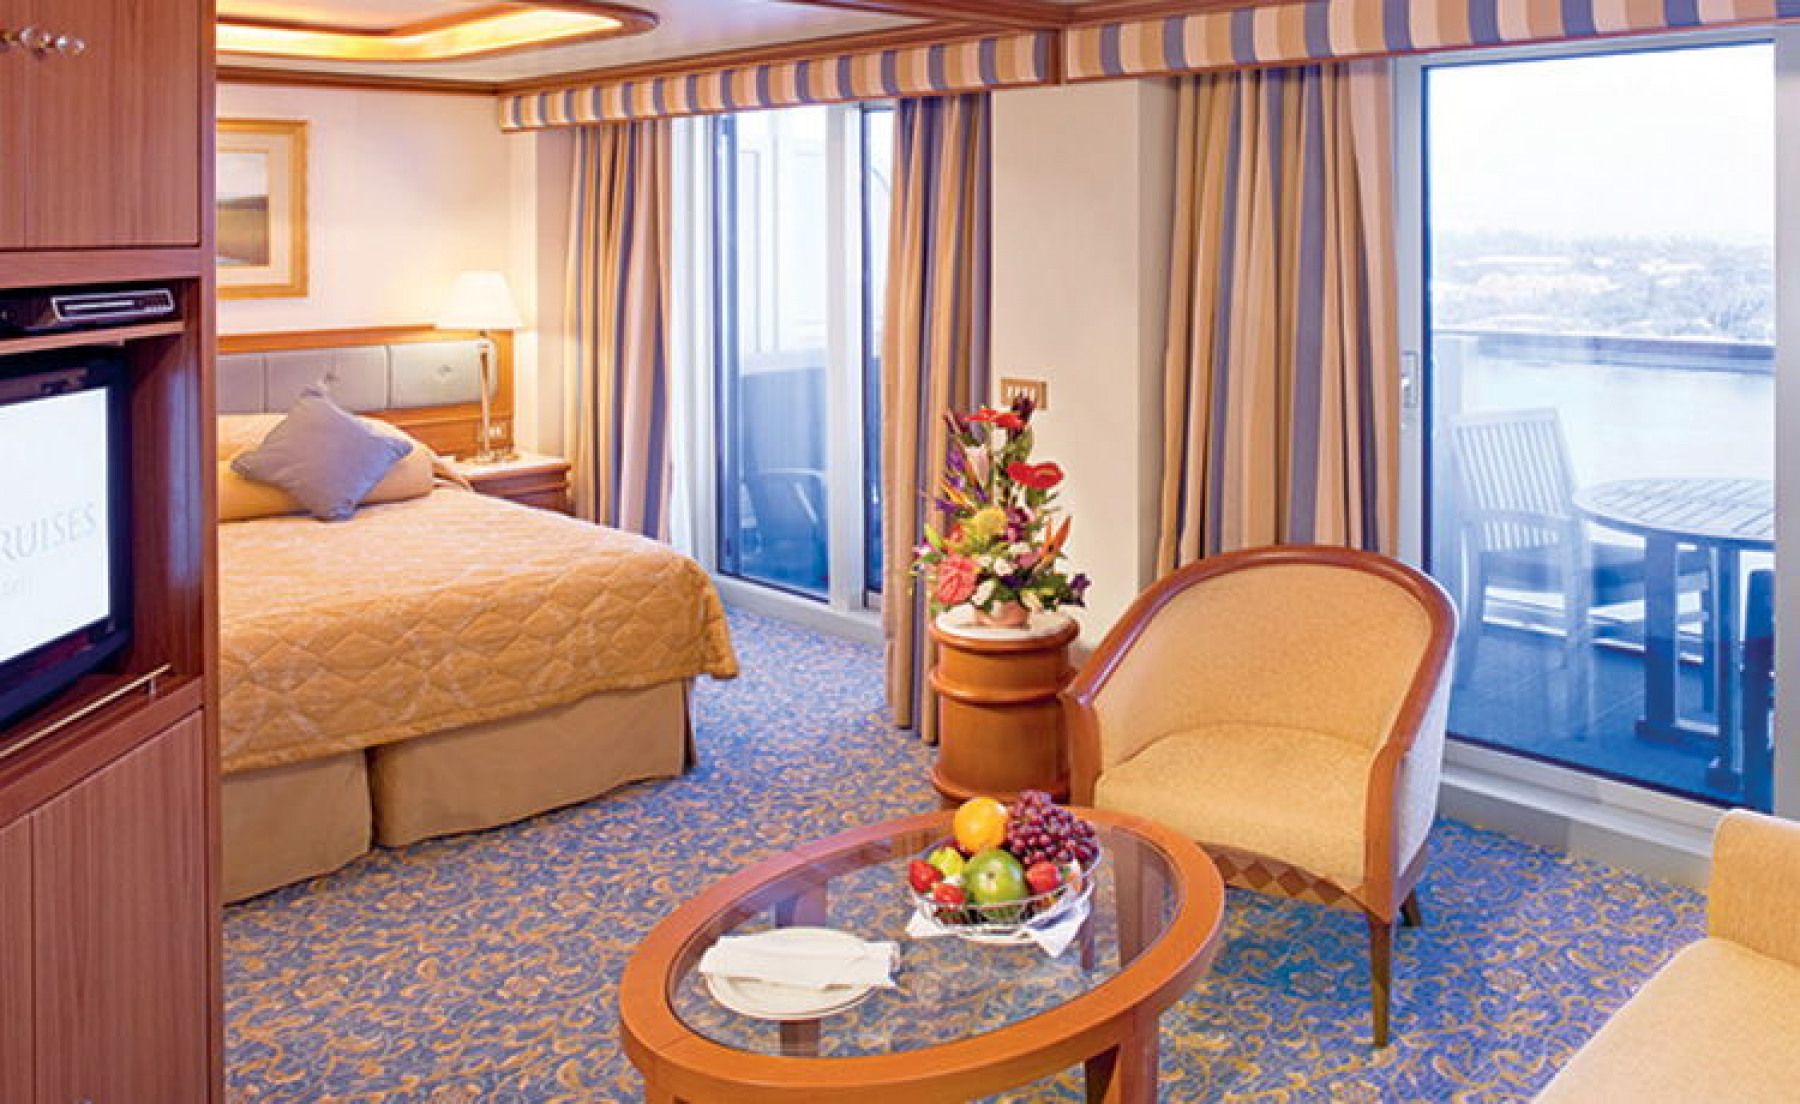 Princess Cruises Ruby Princess Accommodation Suite with Balcony.jpg